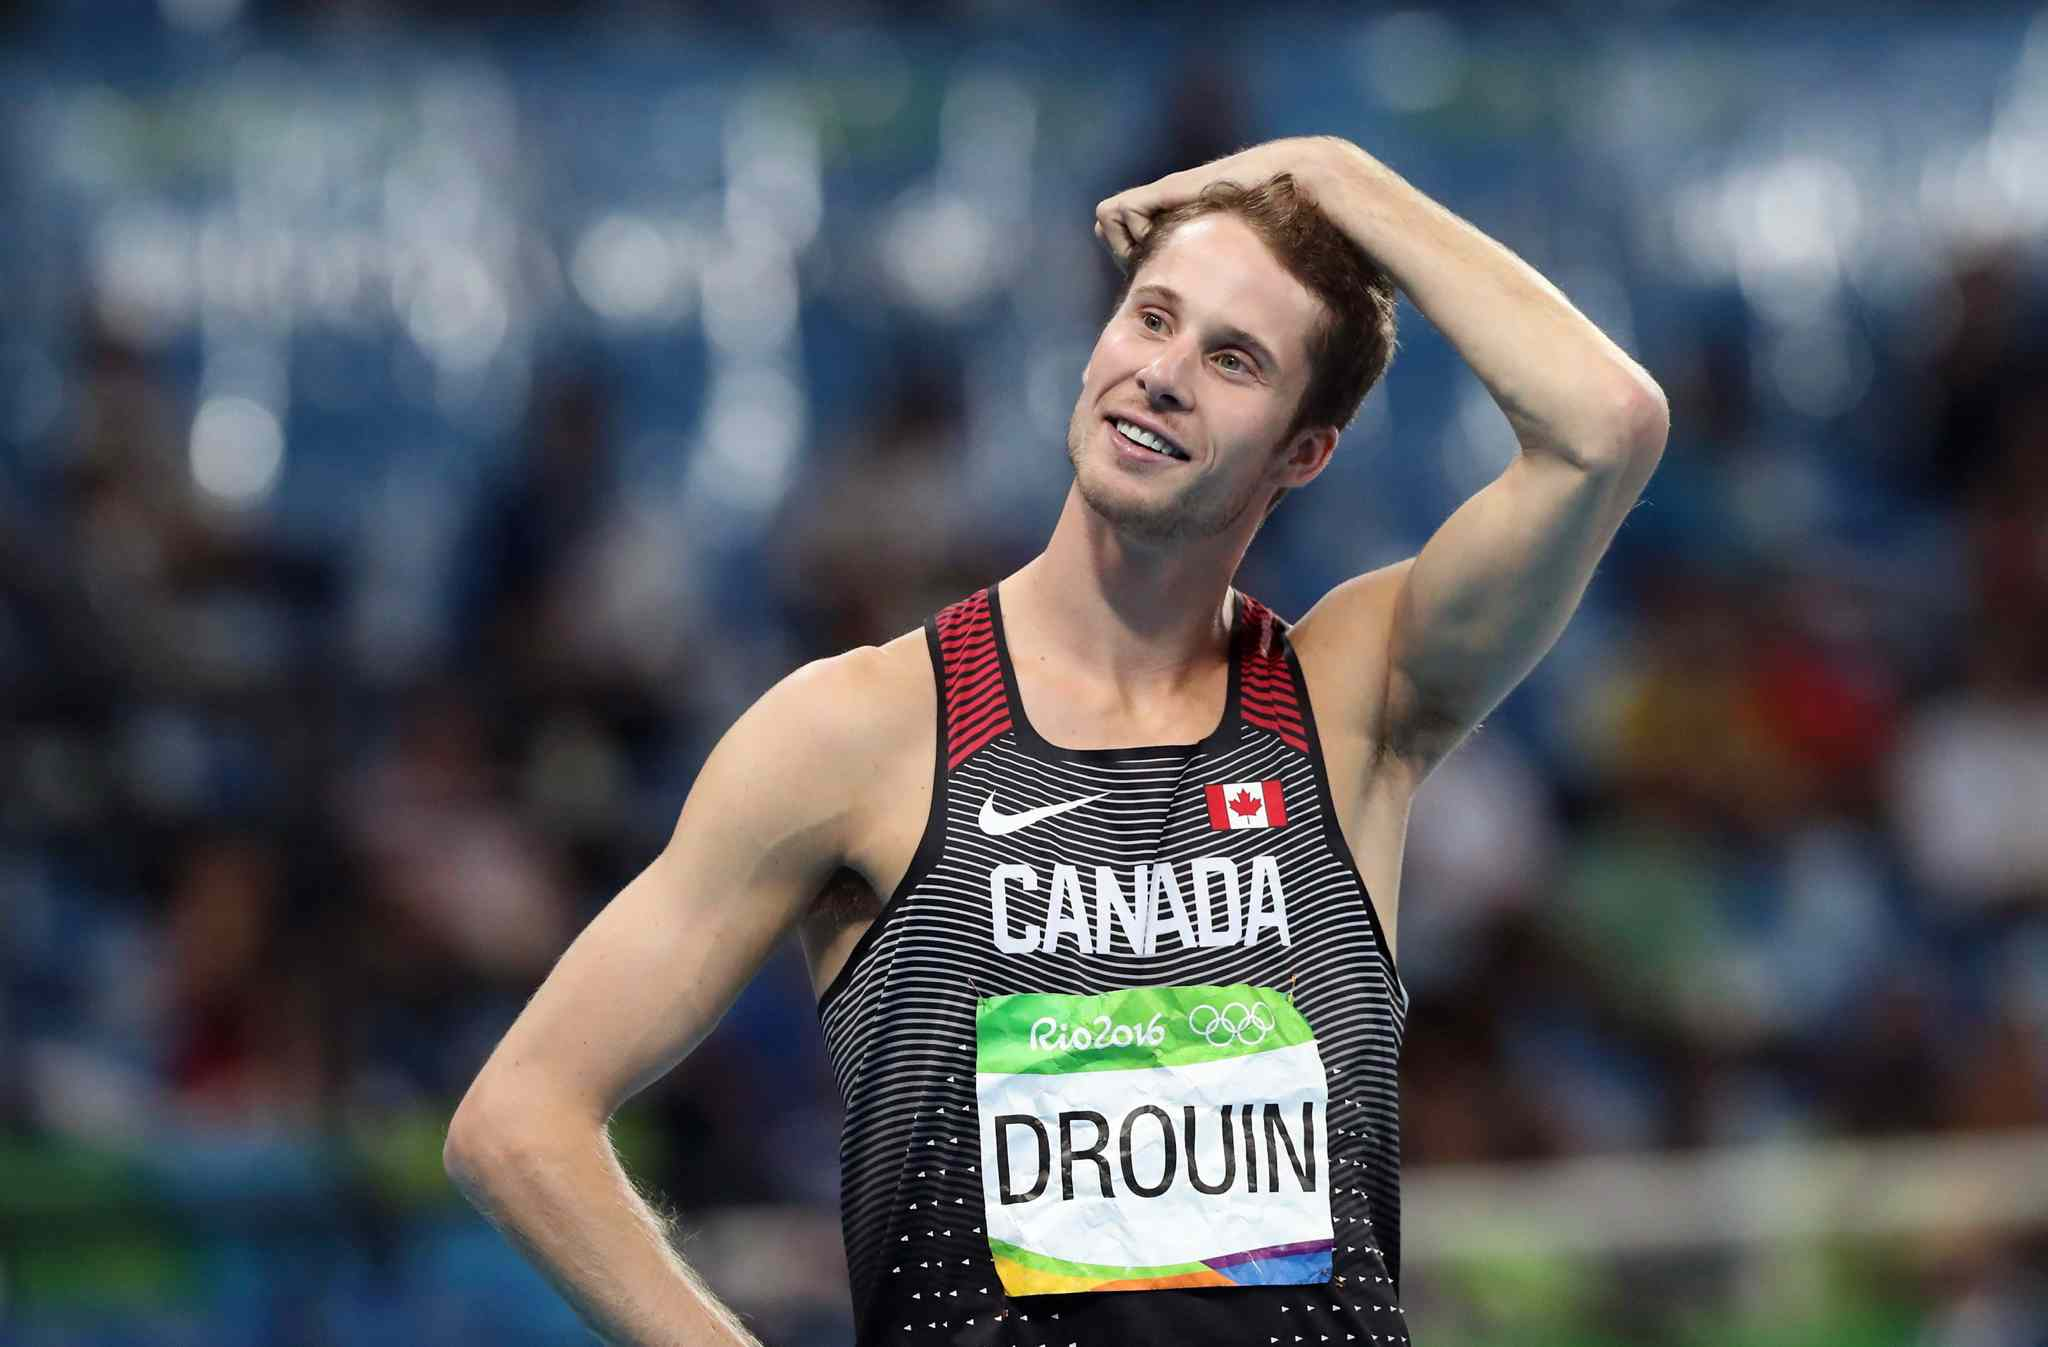 Canada's Derek Drouin competes in the men's high jump final, during the athletics competitions of the 2016 Summer Olympics at the Olympic stadium in Rio de Janeiro, Brazil, Tuesday, Aug. 16, 2016. Canadian high jumper Derek Drouin has withdrawn from the world track and field championships with an Achilles tendon injury.Drouin is the reigning world and Olympic high jump champion. THE CANADIAN PRESS/AP, Lee Jin-man